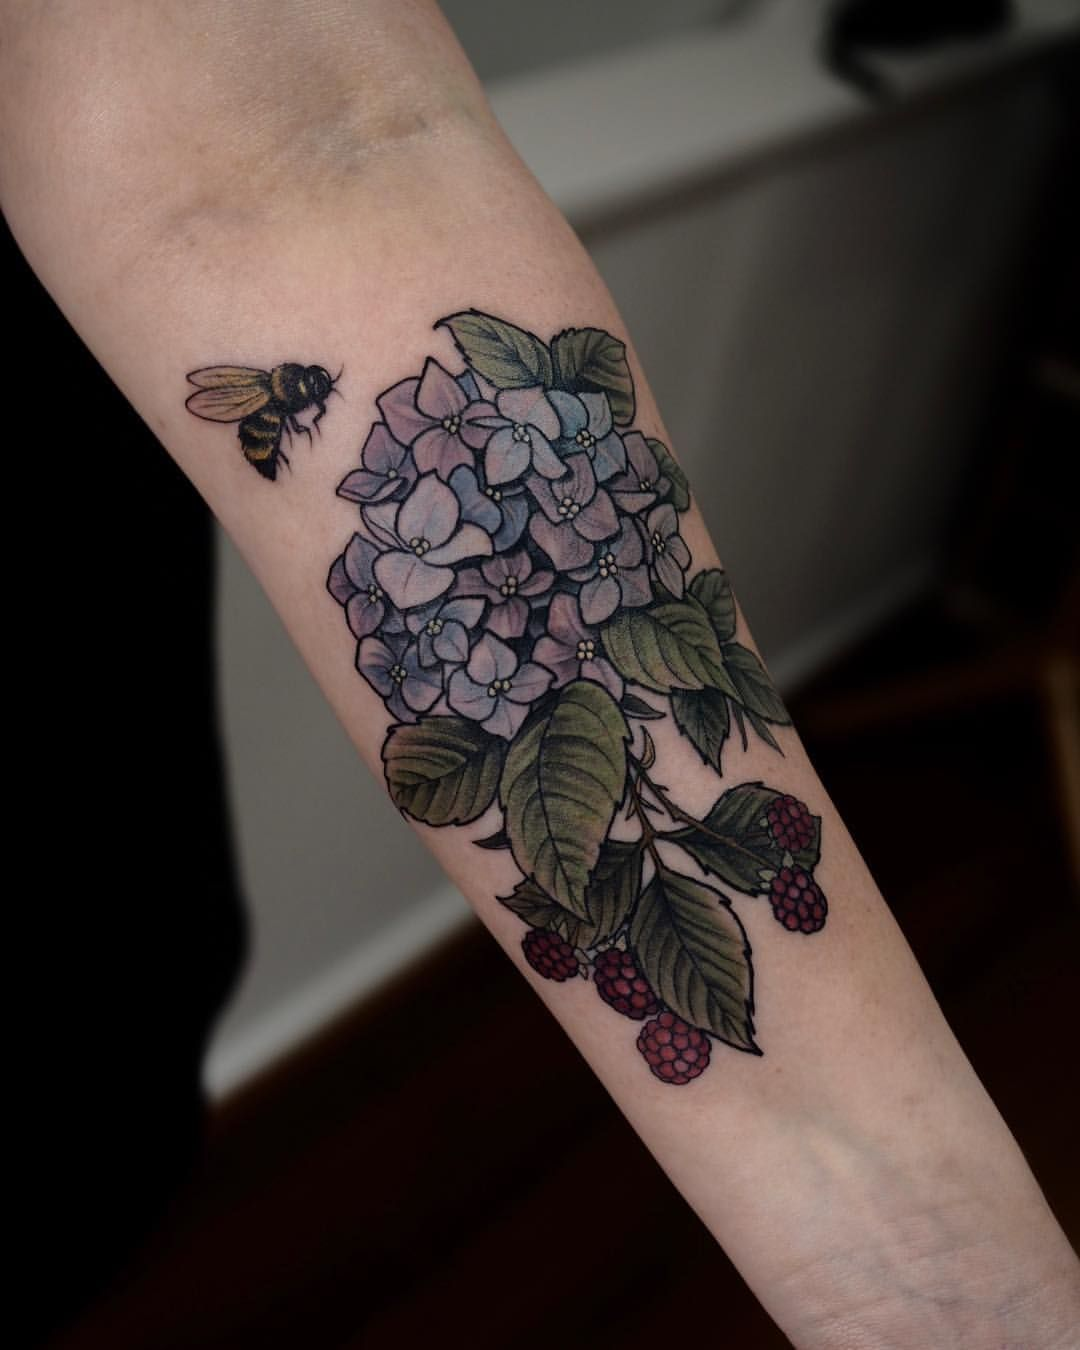 120 Charming Tattoos Idea Of Flower And Animal Hydrangea Tattoo Tattoos Sleeve Tattoos